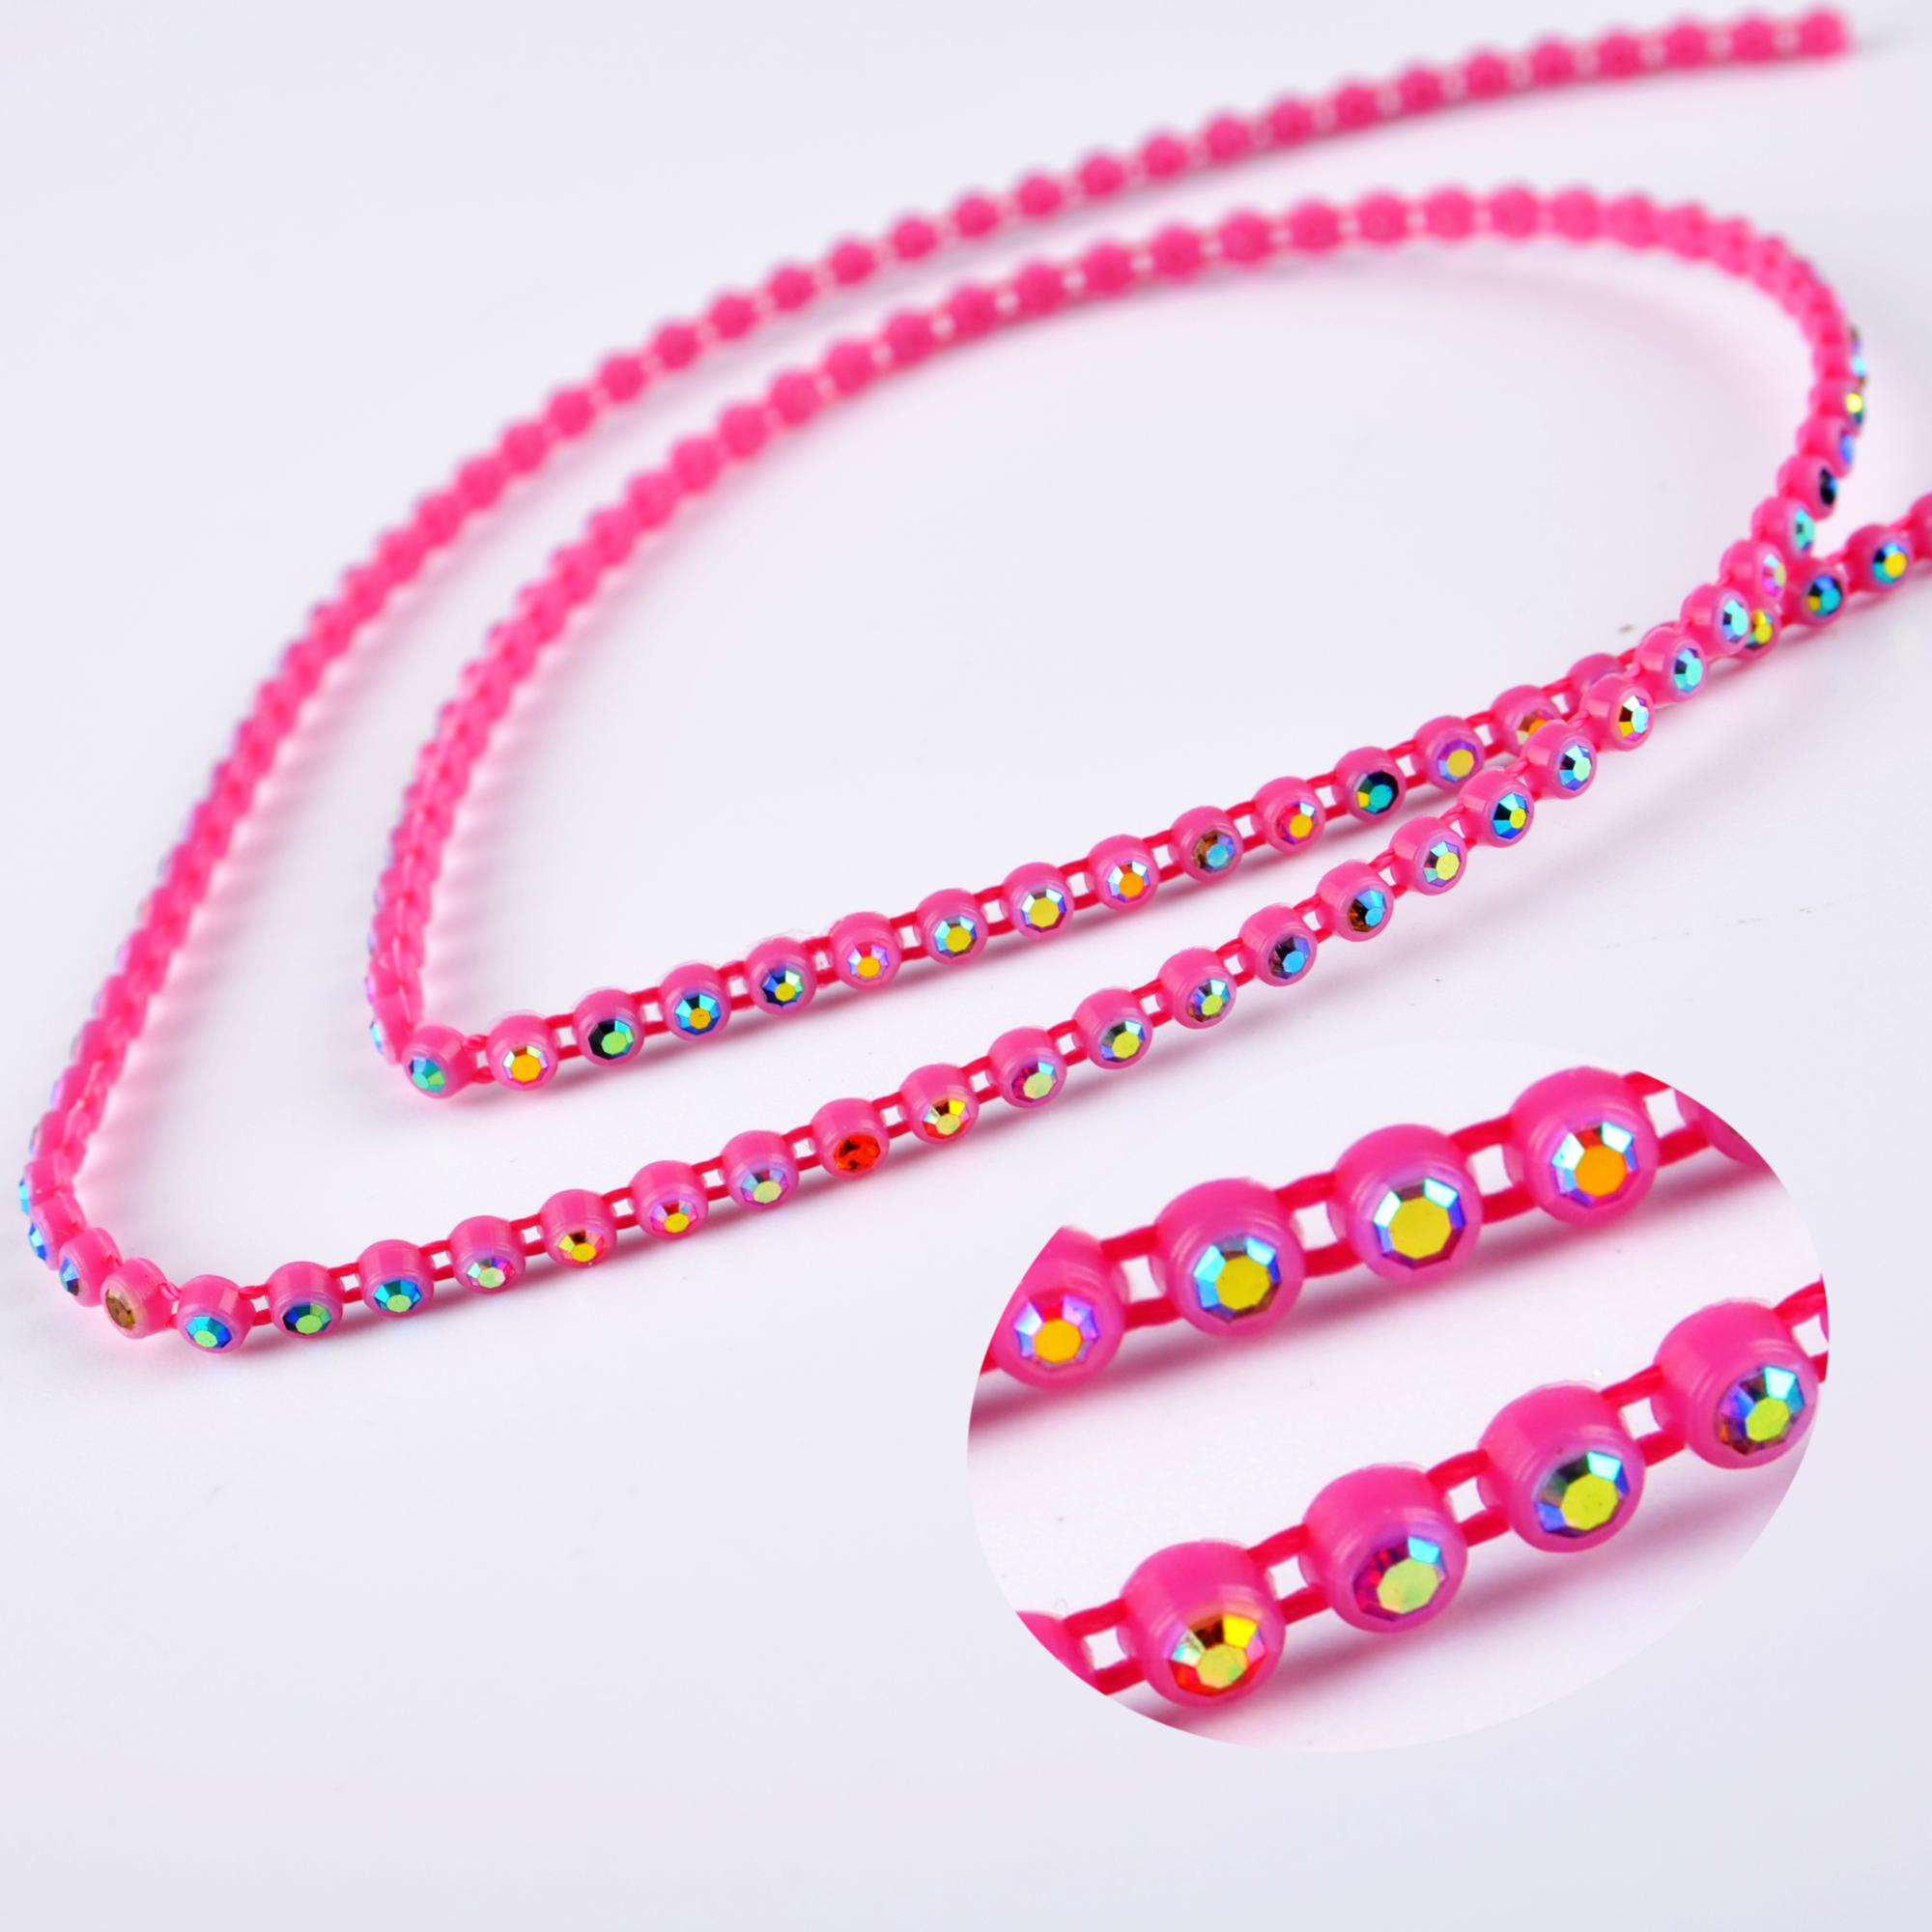 Plastic Rhinestone Banding For Garment Trimming